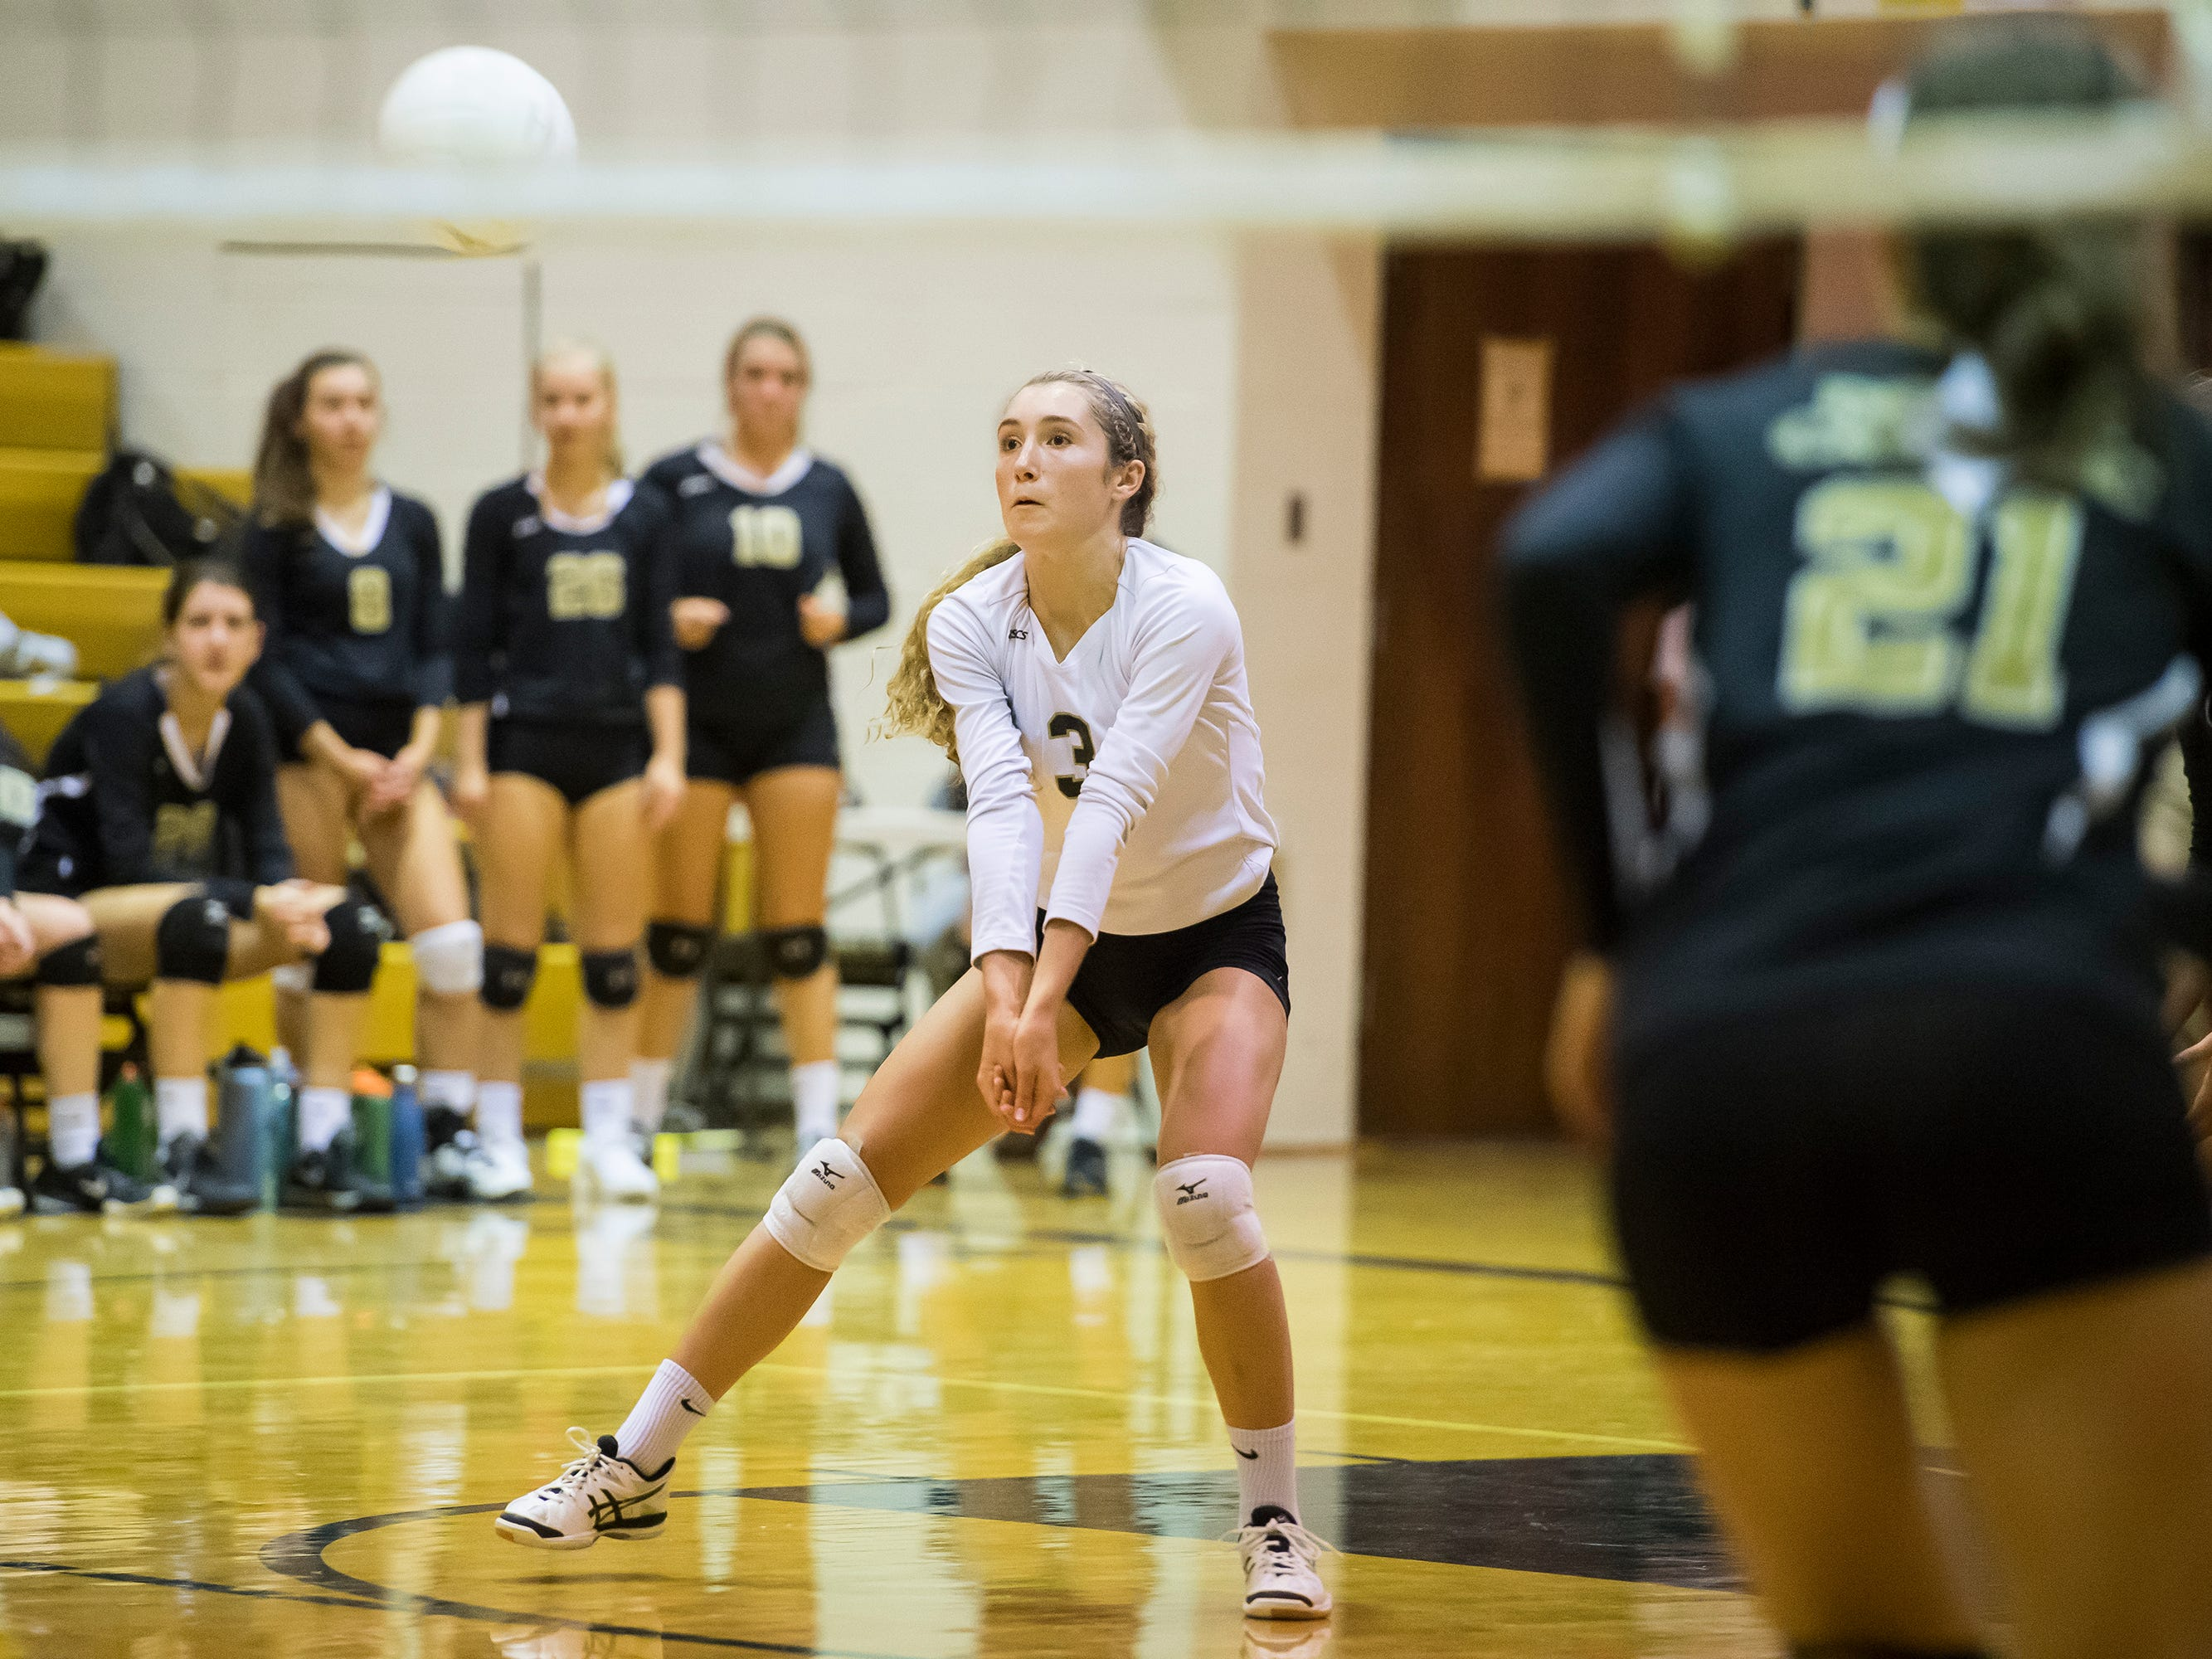 Delone Catholic's Lauren Trummer prepares to hit the ball during play against Hanover on Tuesday, September 18, 2018. The Squirettes swept the Hawkettes 25-16, 25-19, 25-14.